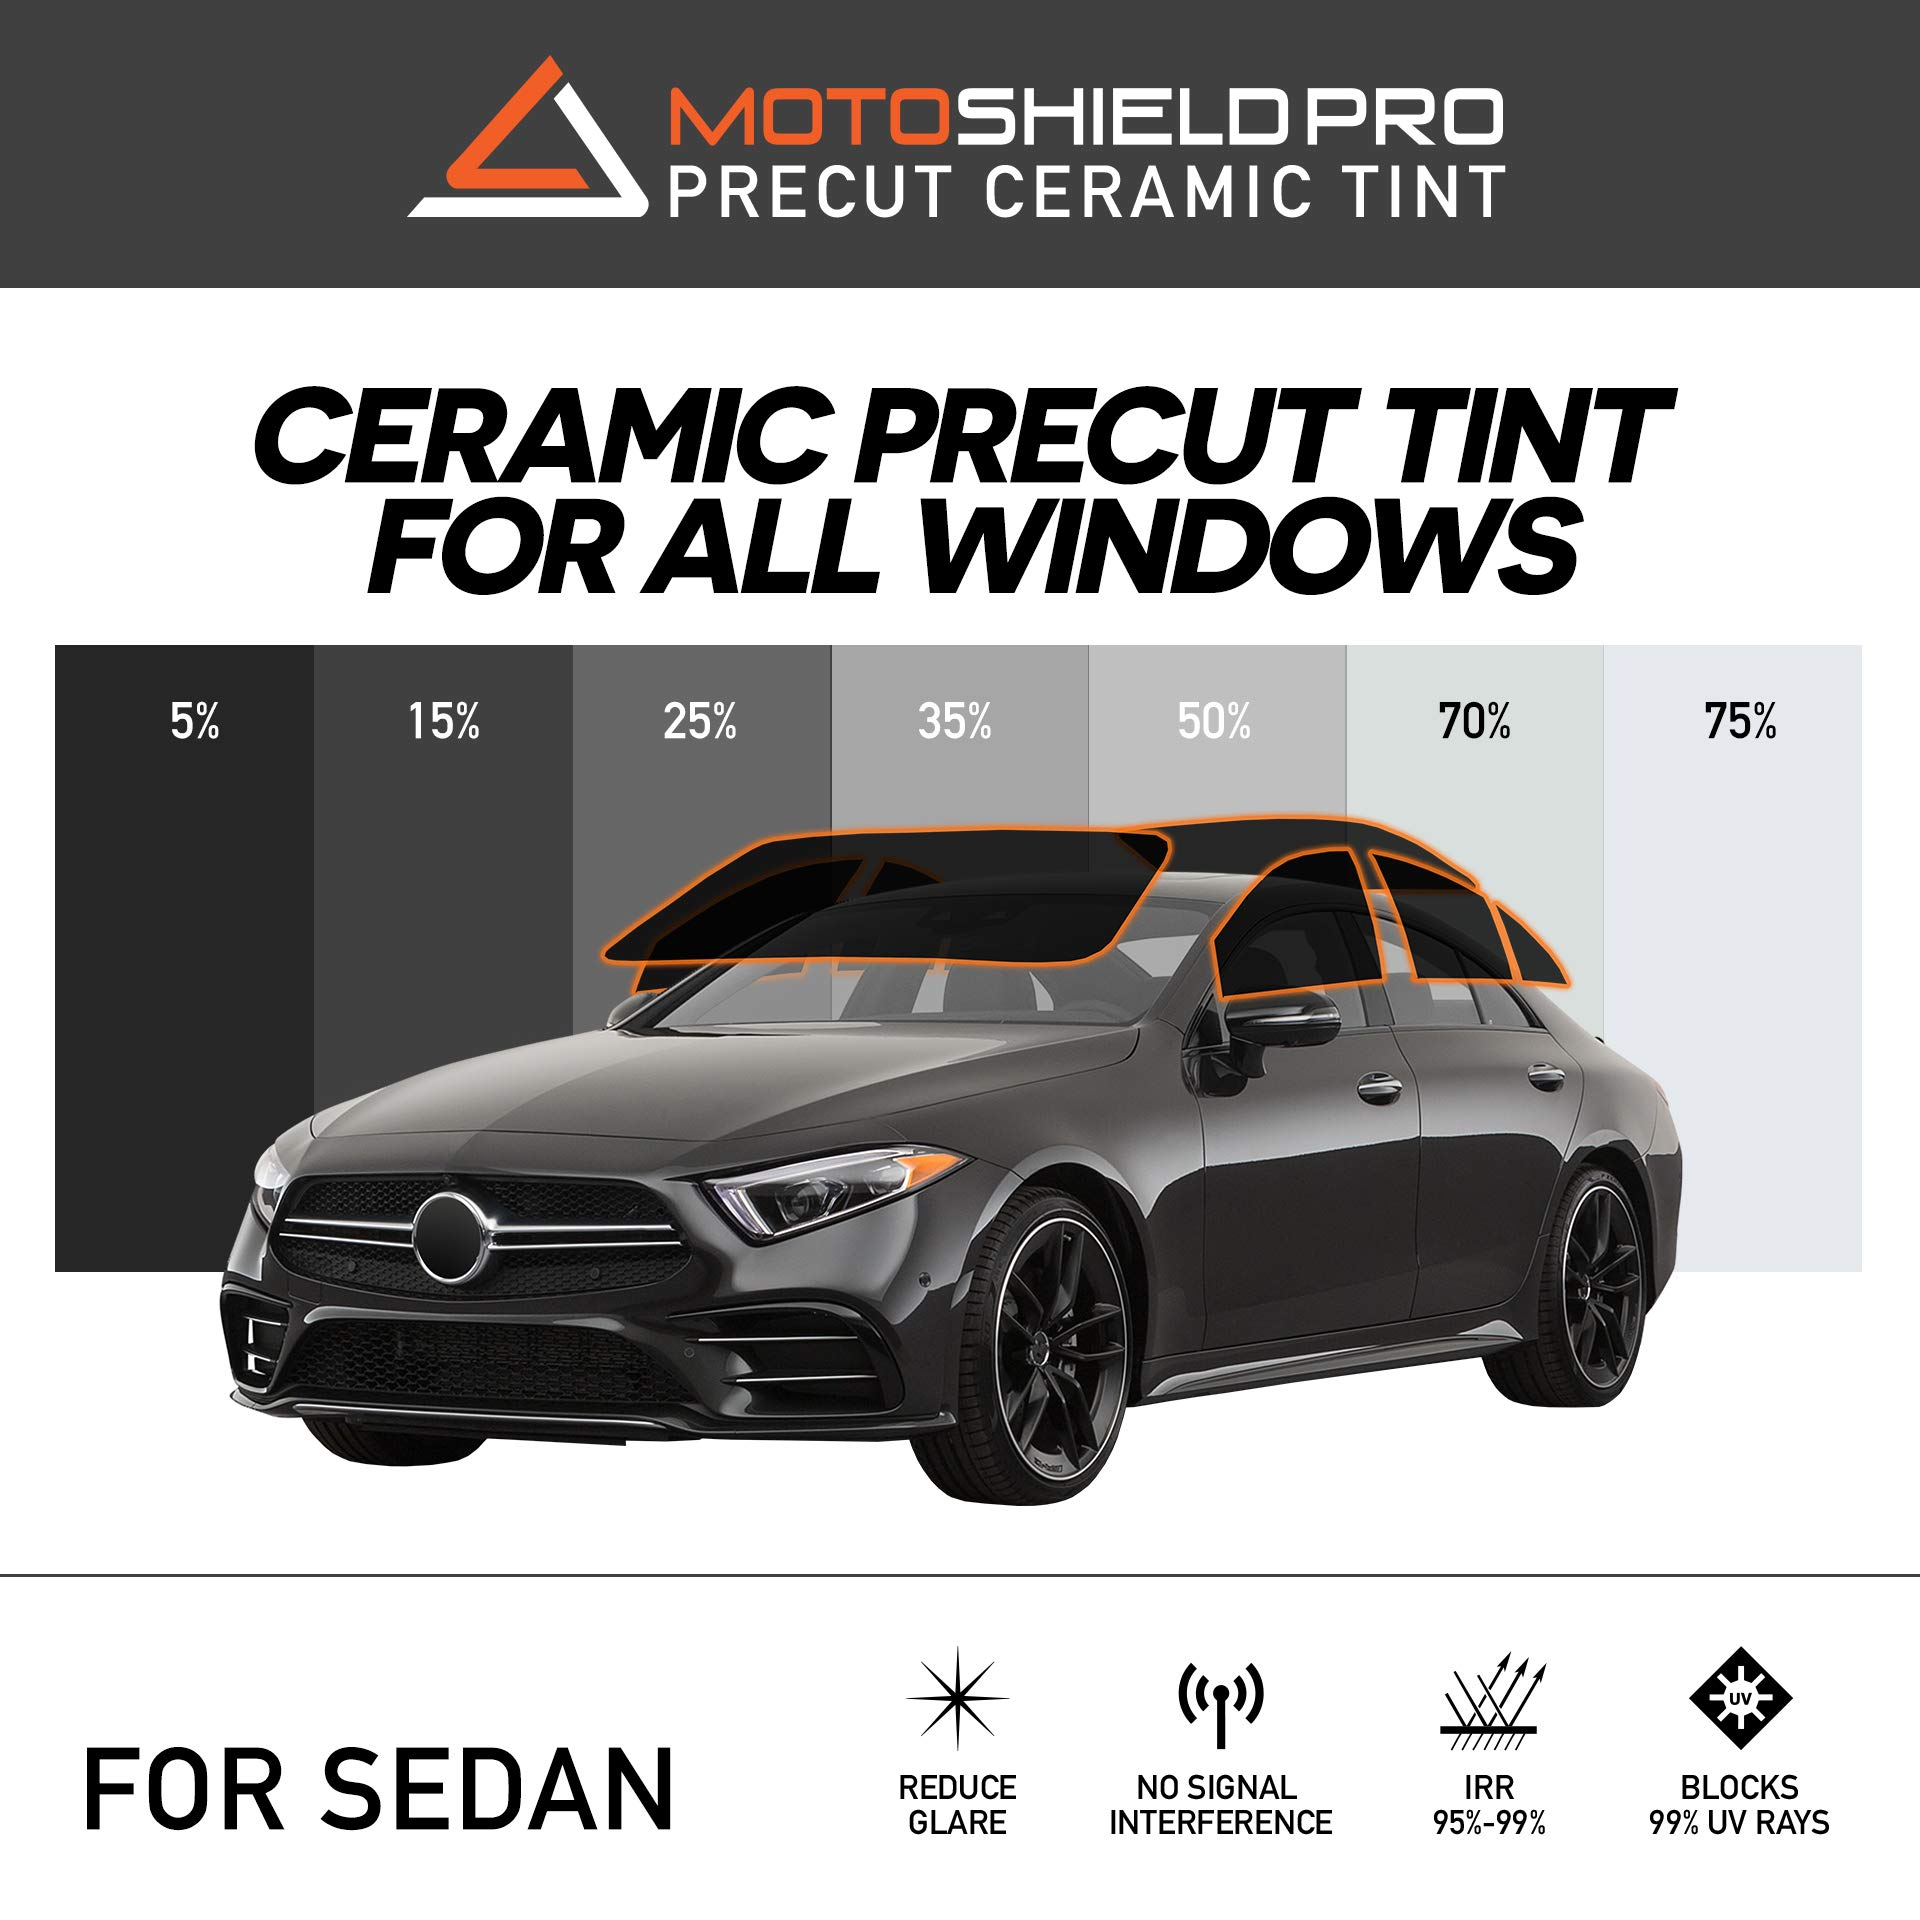 MotoShield Pro Precut Ceramic Tint Film [Blocks Up to 99% of UV/IRR Rays] Window Tint for Sedan - All Windows, Any Tint Shade by MotoShield Pro (Image #1)